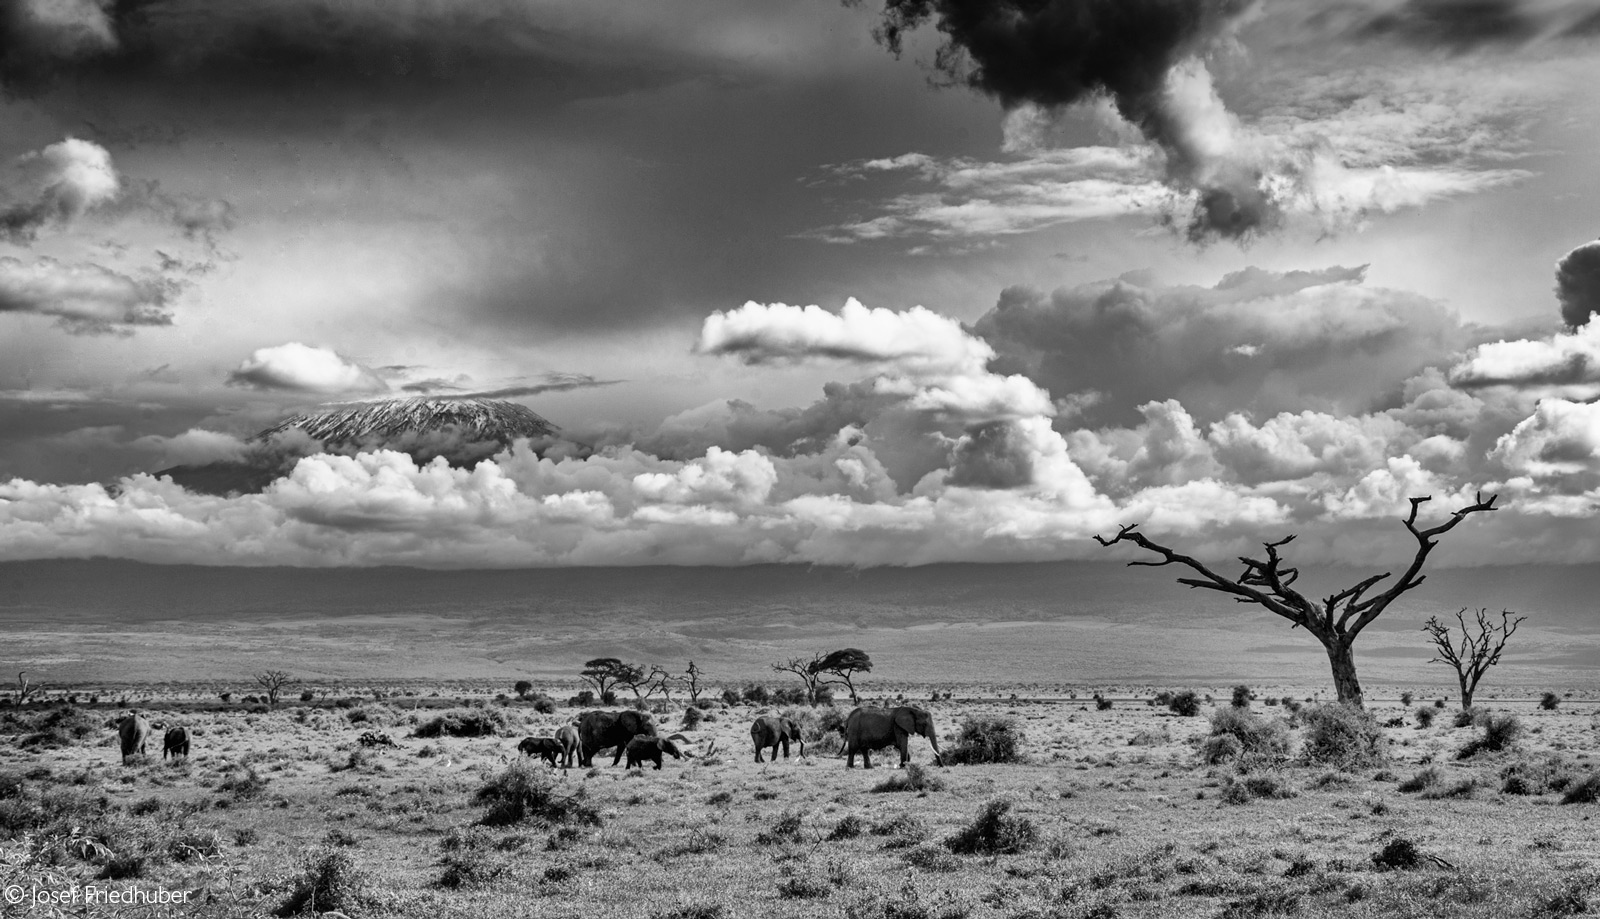 An elephant family herd pass by with Mount Kilamanjaro in the background. Amboseli National Park, Kenya © Josef Friedhuber